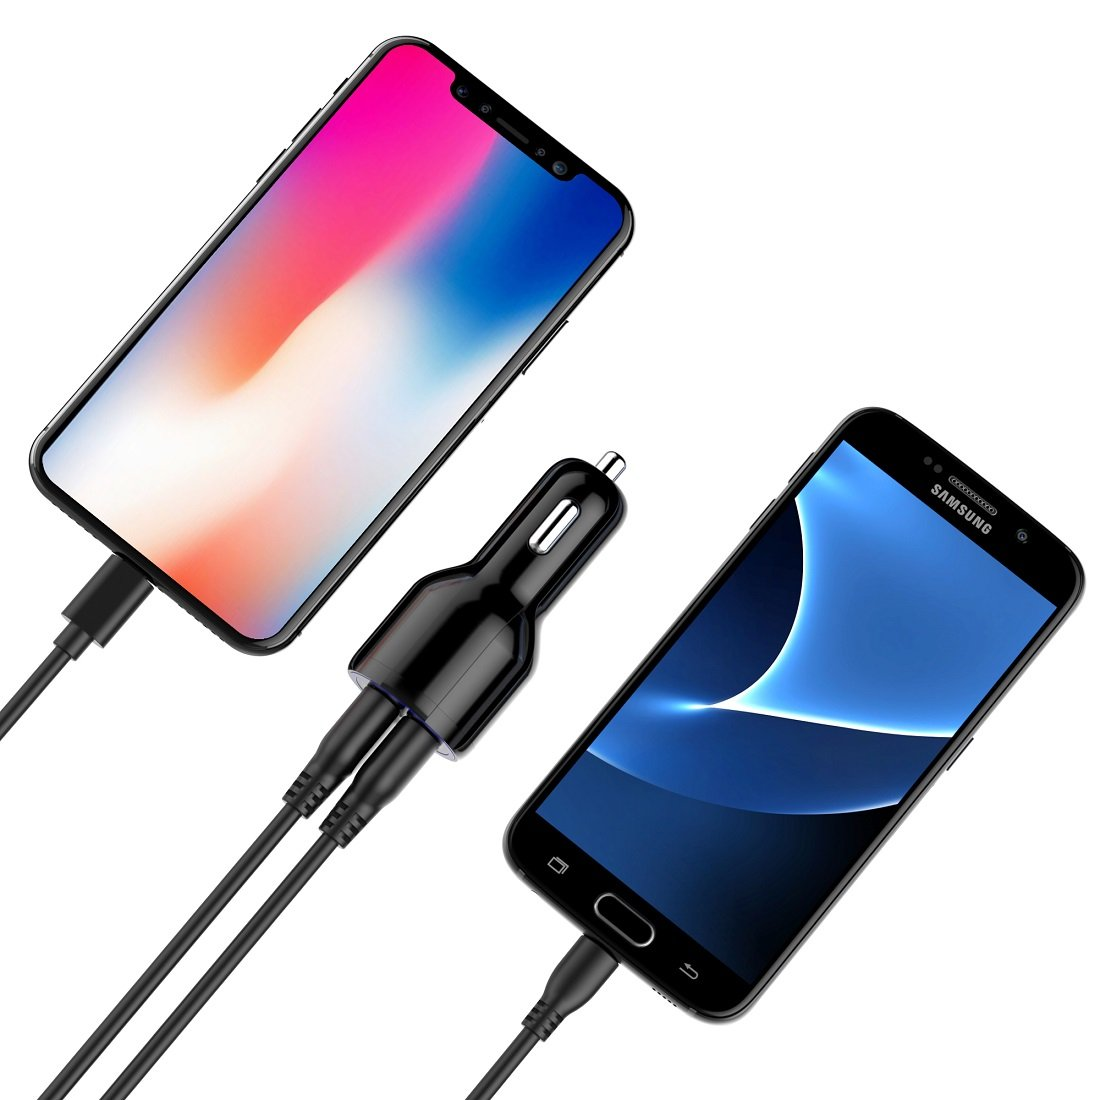 3ft Micro USB Cable Combo Note 5//4 LG Galaxy S8//S7//Edge//Plus Dual USB Fast Car Adapter for iPhone X//8//7//6S//Plus Haloking Car Charger HTC Nexus Black 4332952749